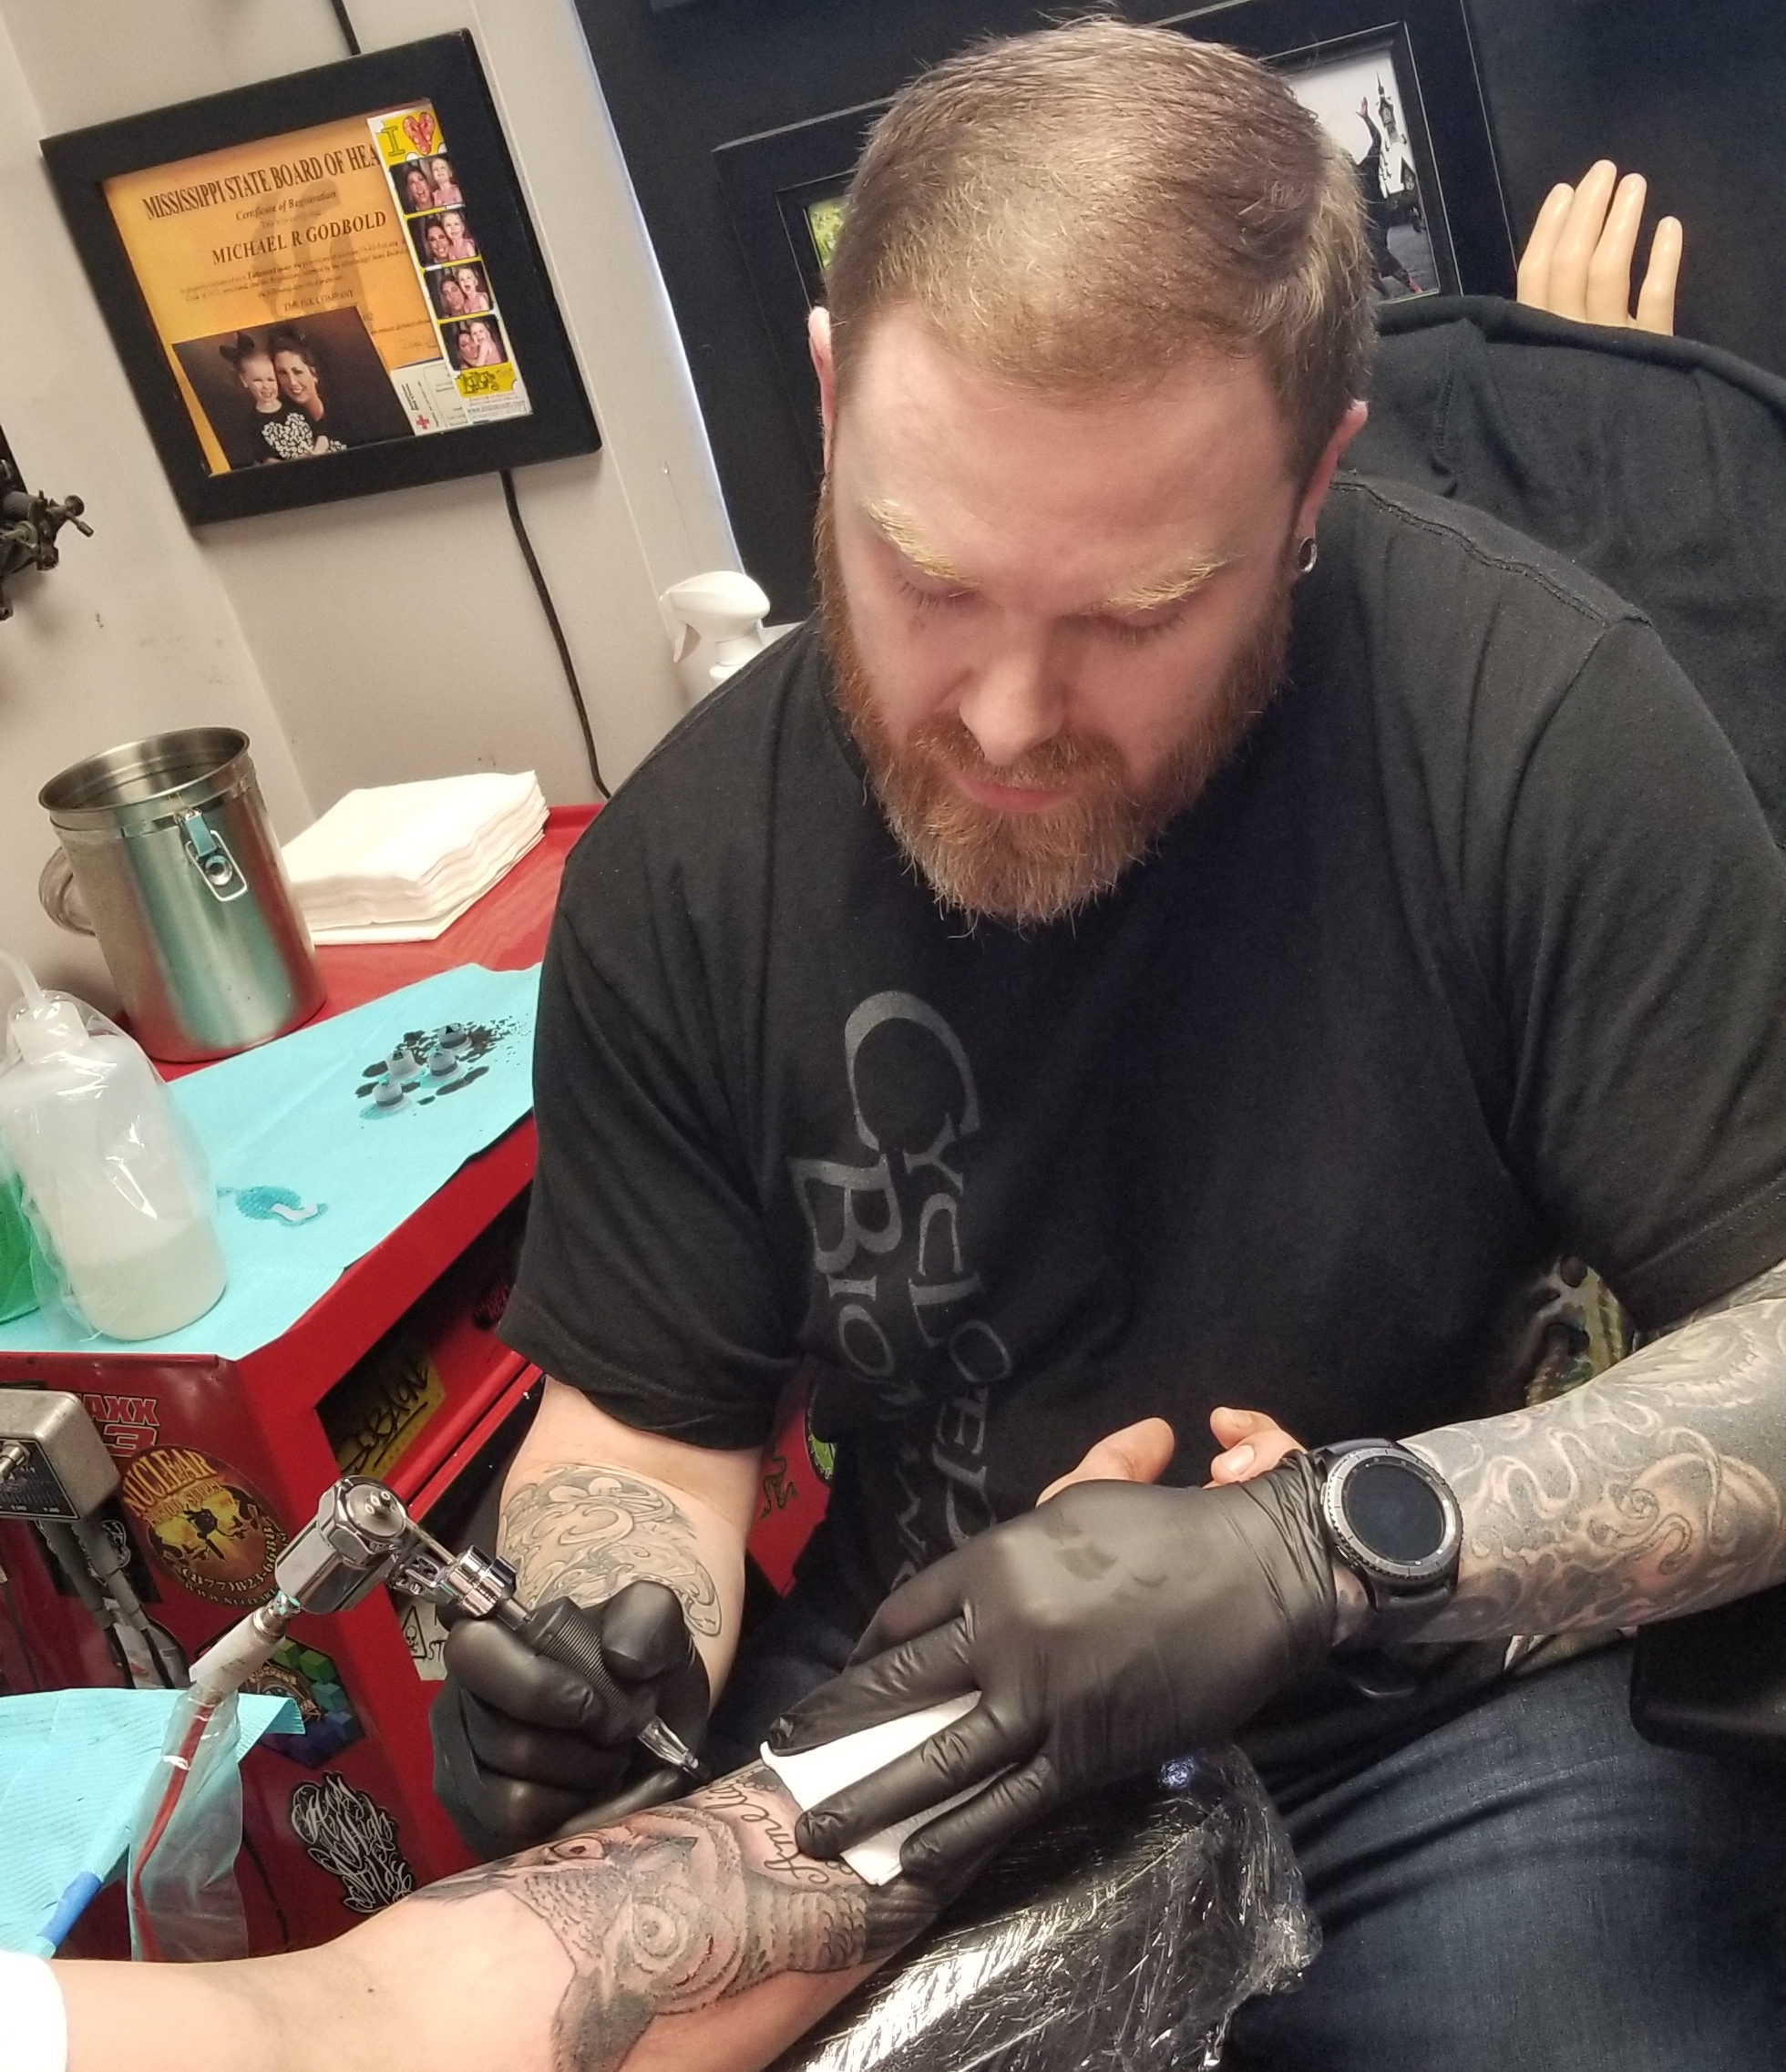 Mikey Godbold - Mikey has been tattooing since 2001. He co-owns The Ink Company Tattoo Studio in Harriesburg, MS and has been there the last 11 years. Mikey is a fairly diverse artist but specializes in bio-organic and custom black and grey work. Click his photo to check out his work!